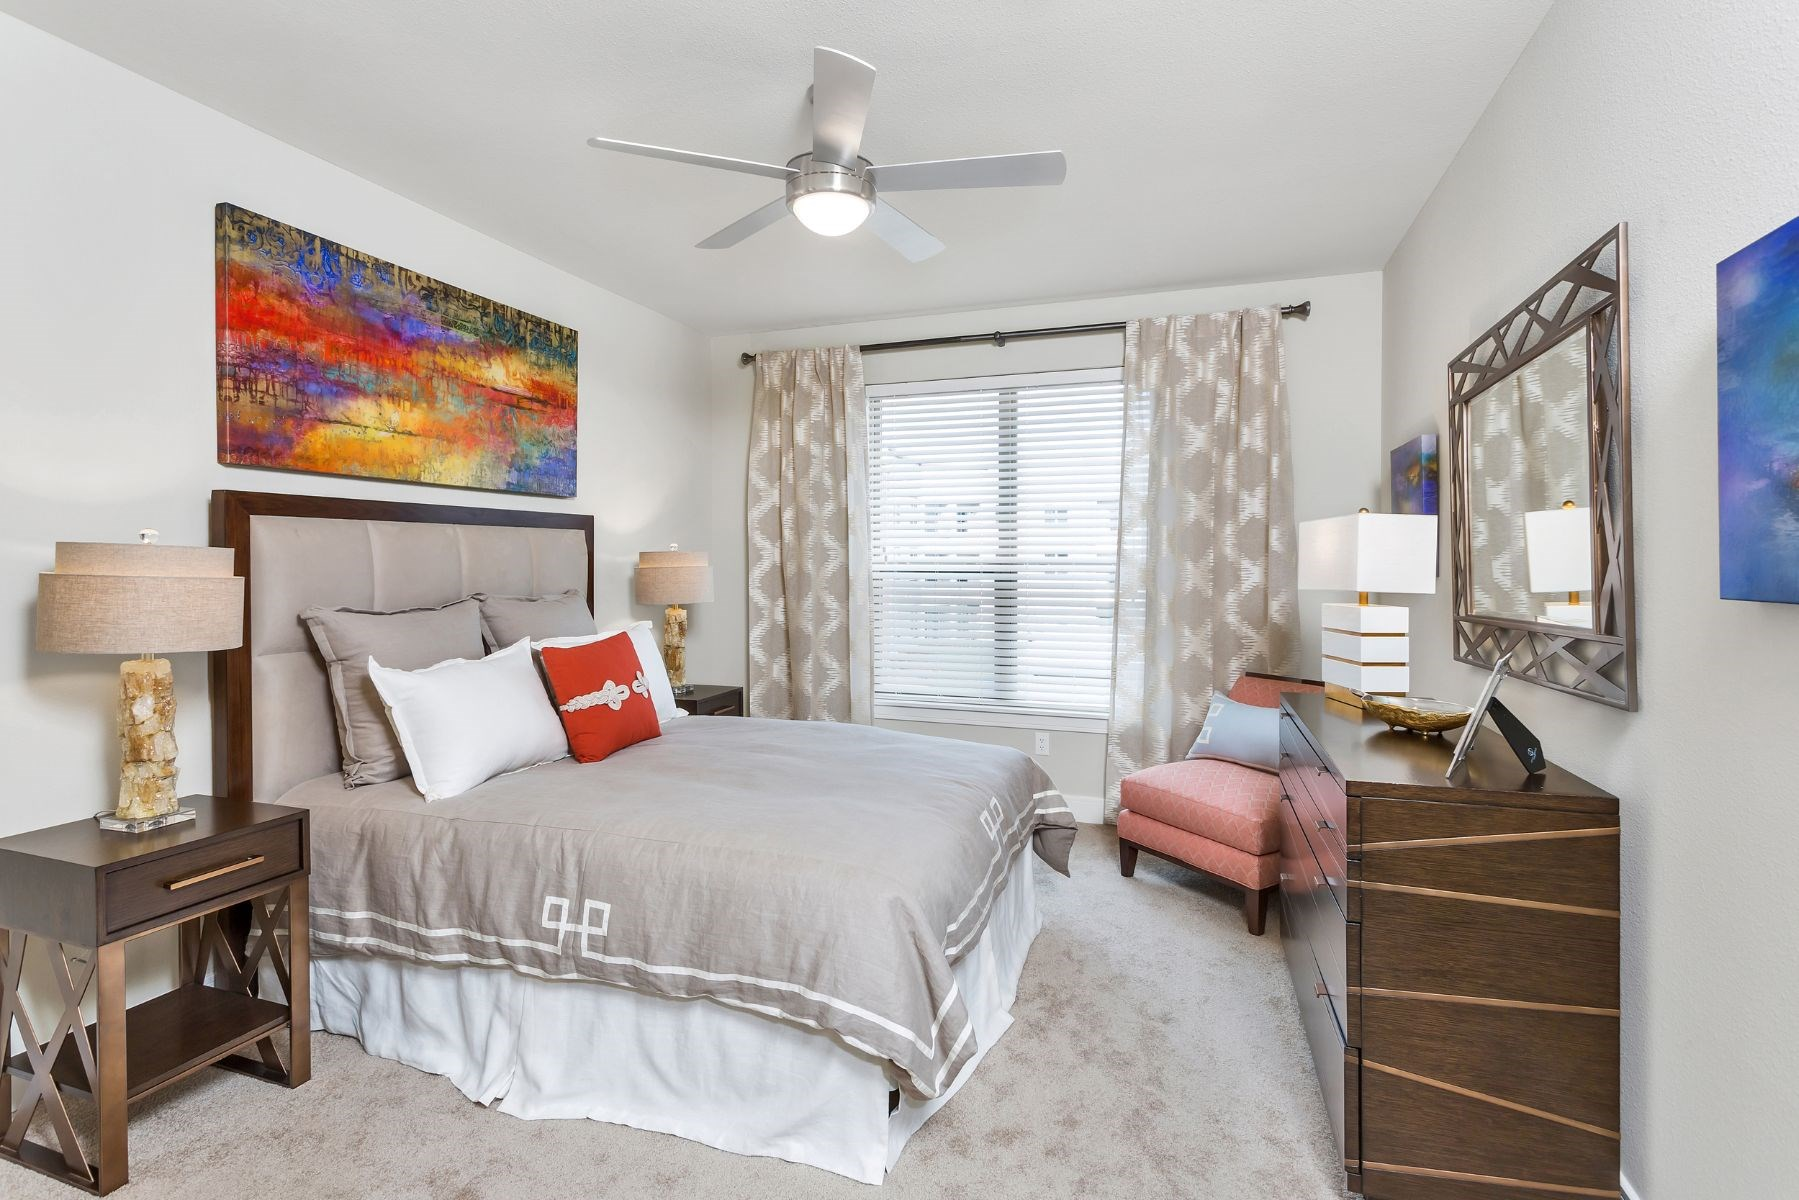 Westwood Green Apartments Bedroom with wall to wall carpet, ceiling fan, and large window